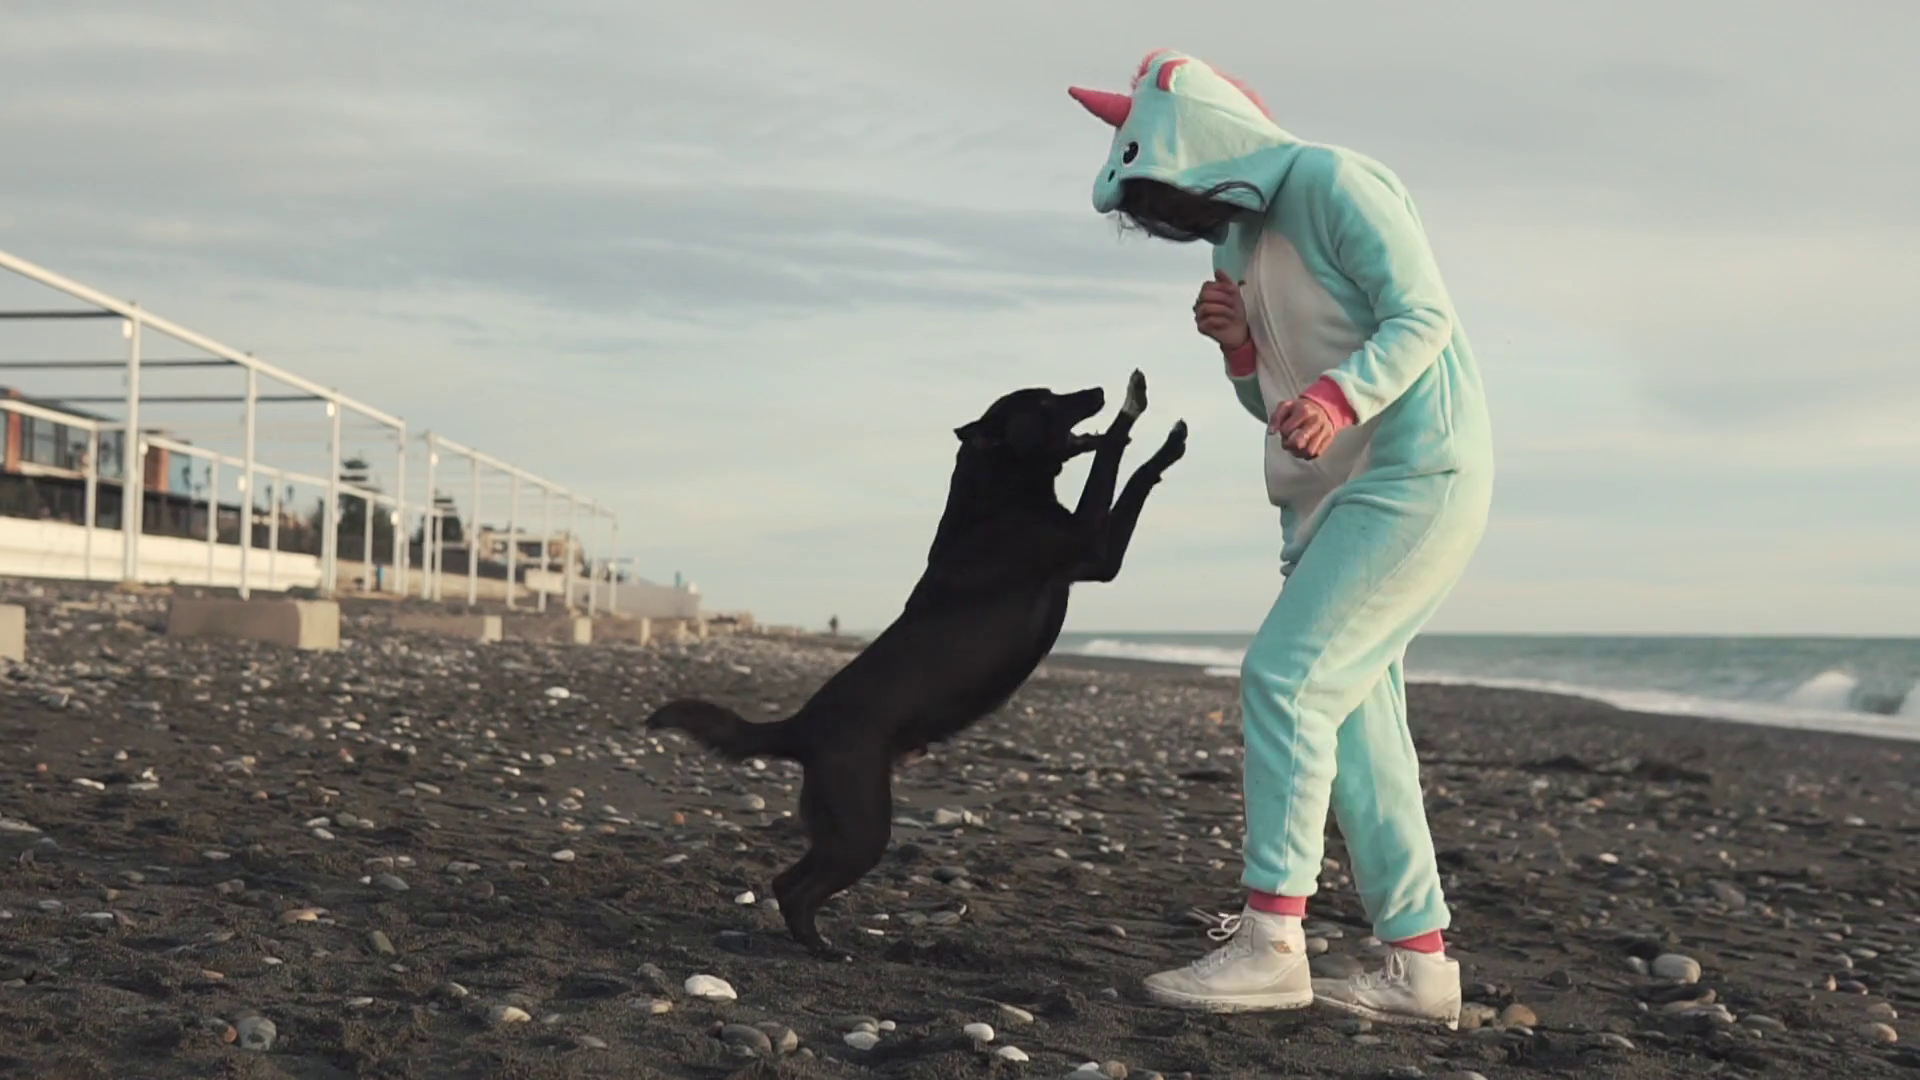 cheerful and funny lady in a kigurumi costume plays with a playful dog by  the sea, a woman and her domestic pet jumping and laughing on a rocky beach  on a sunny